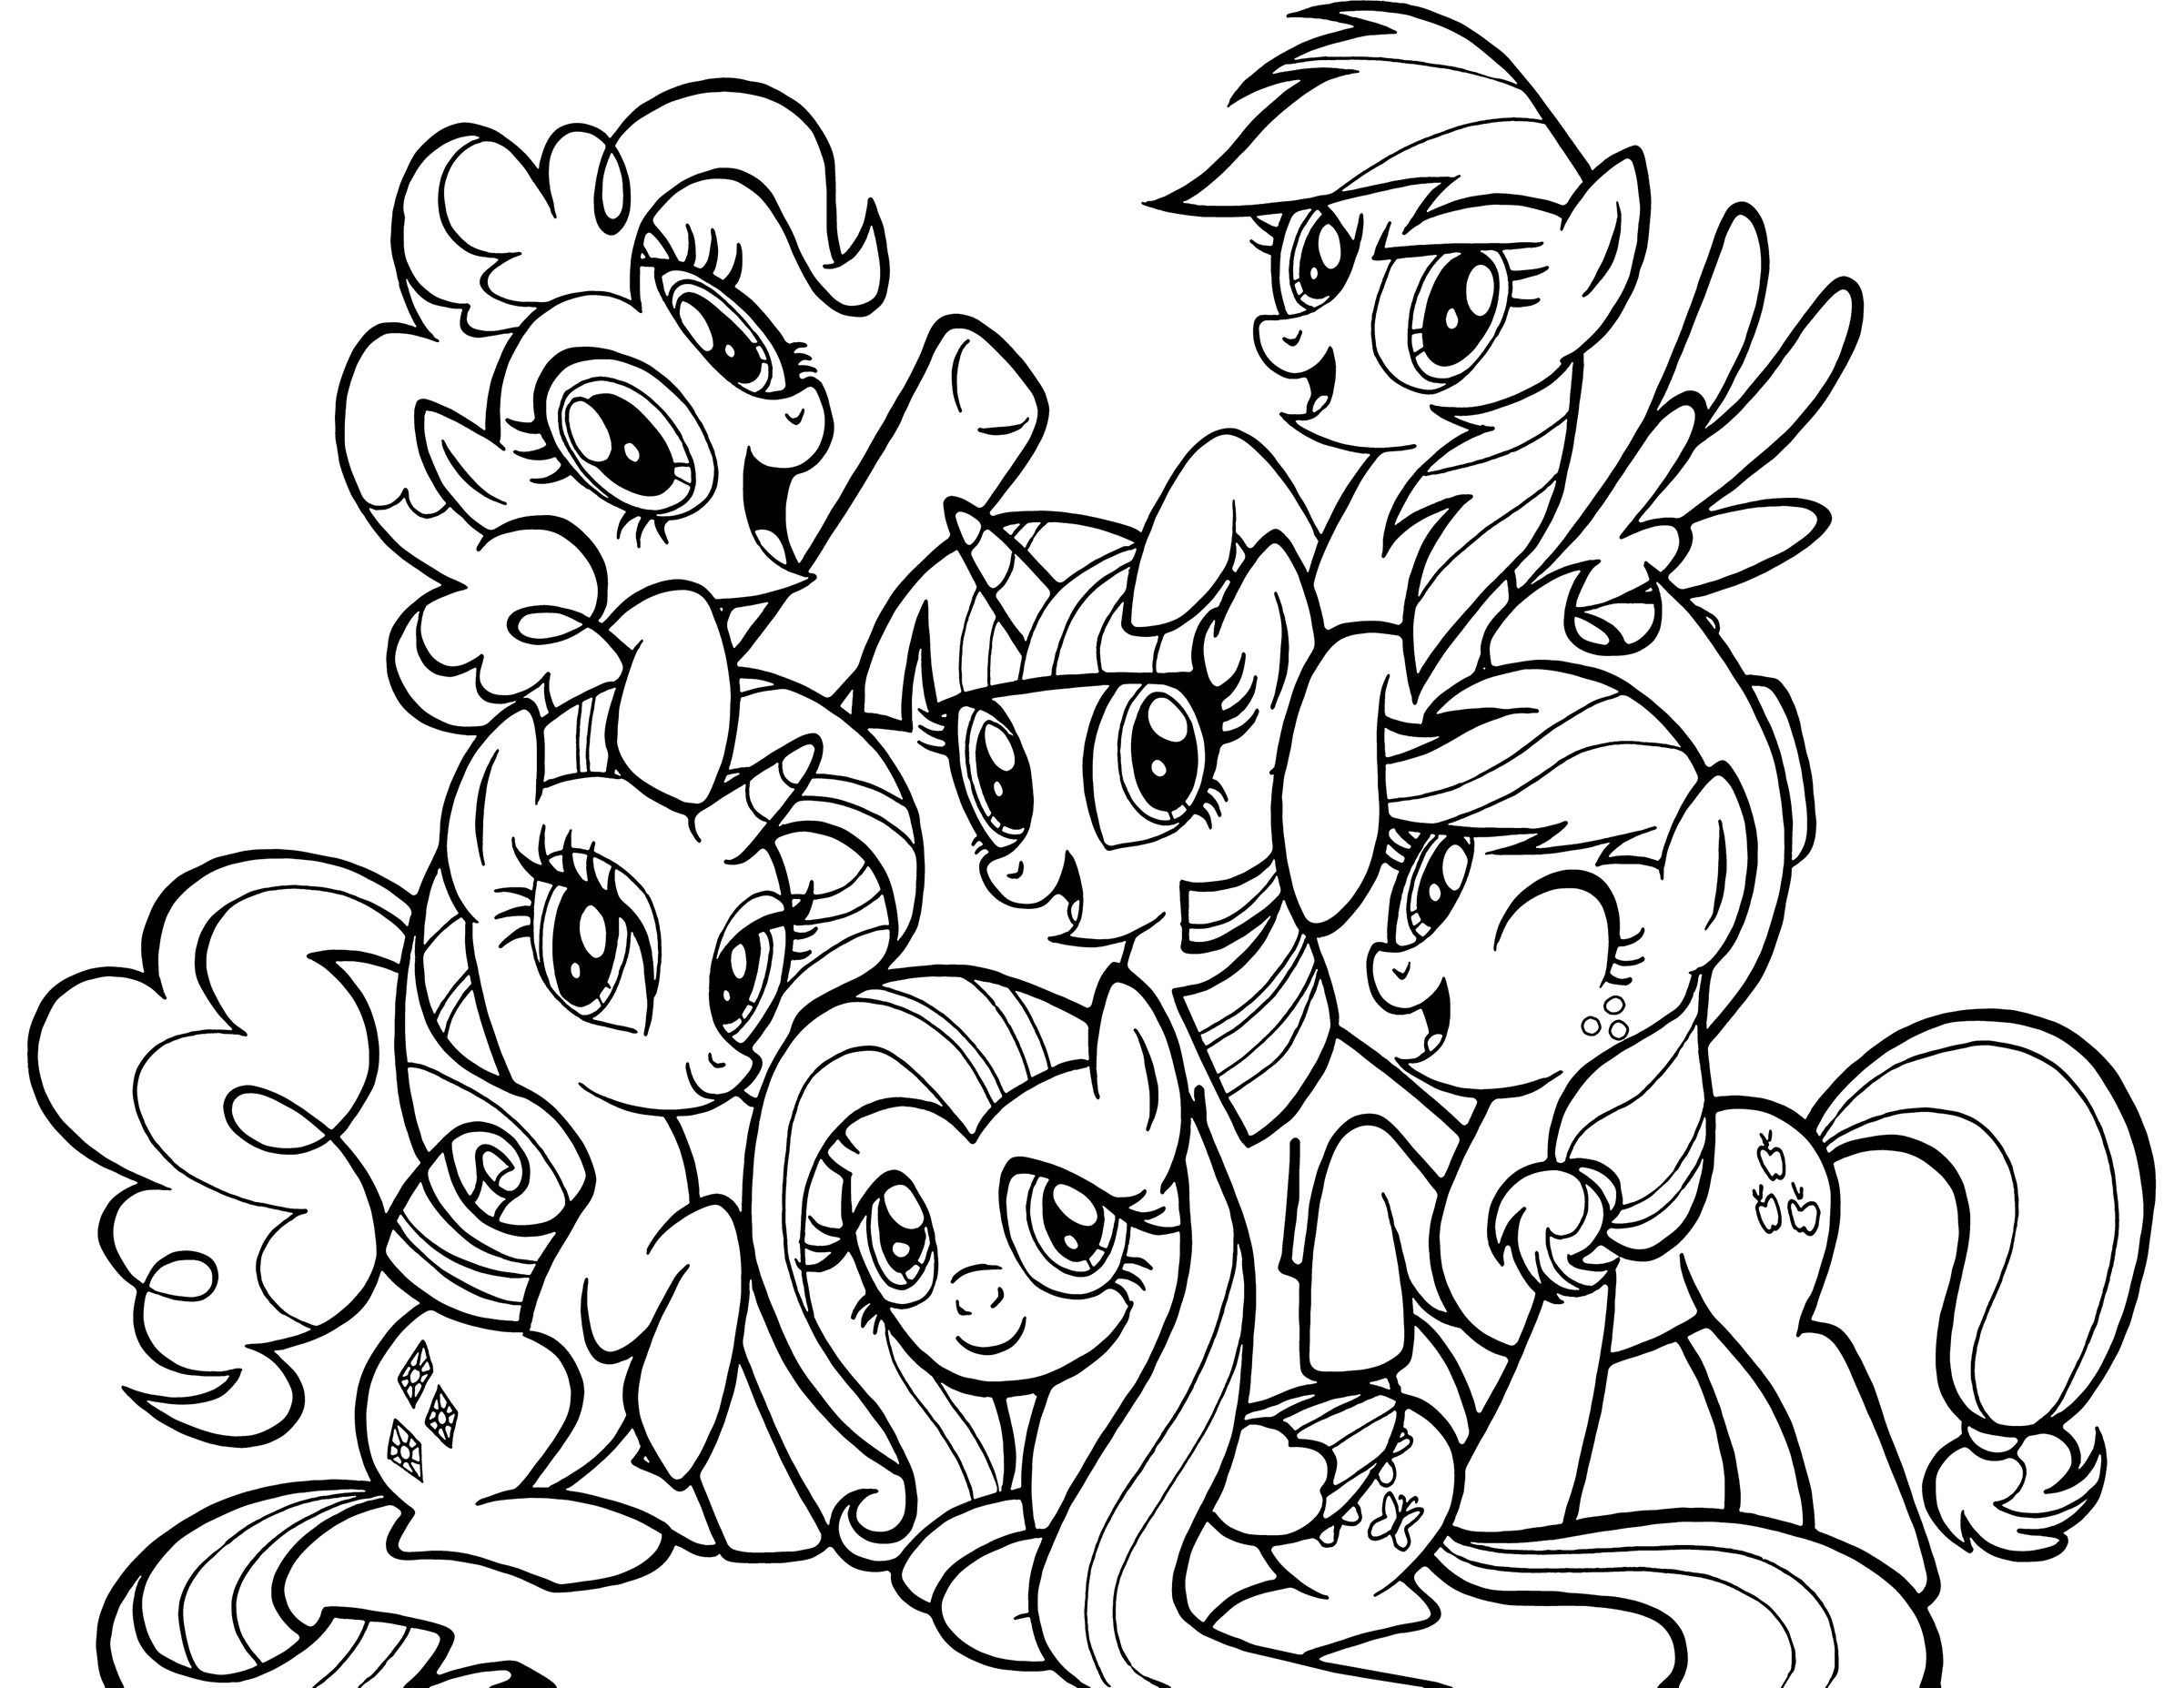 pony images for coloring 17 my little pony coloring pages pdf jpeg png free coloring pony images for